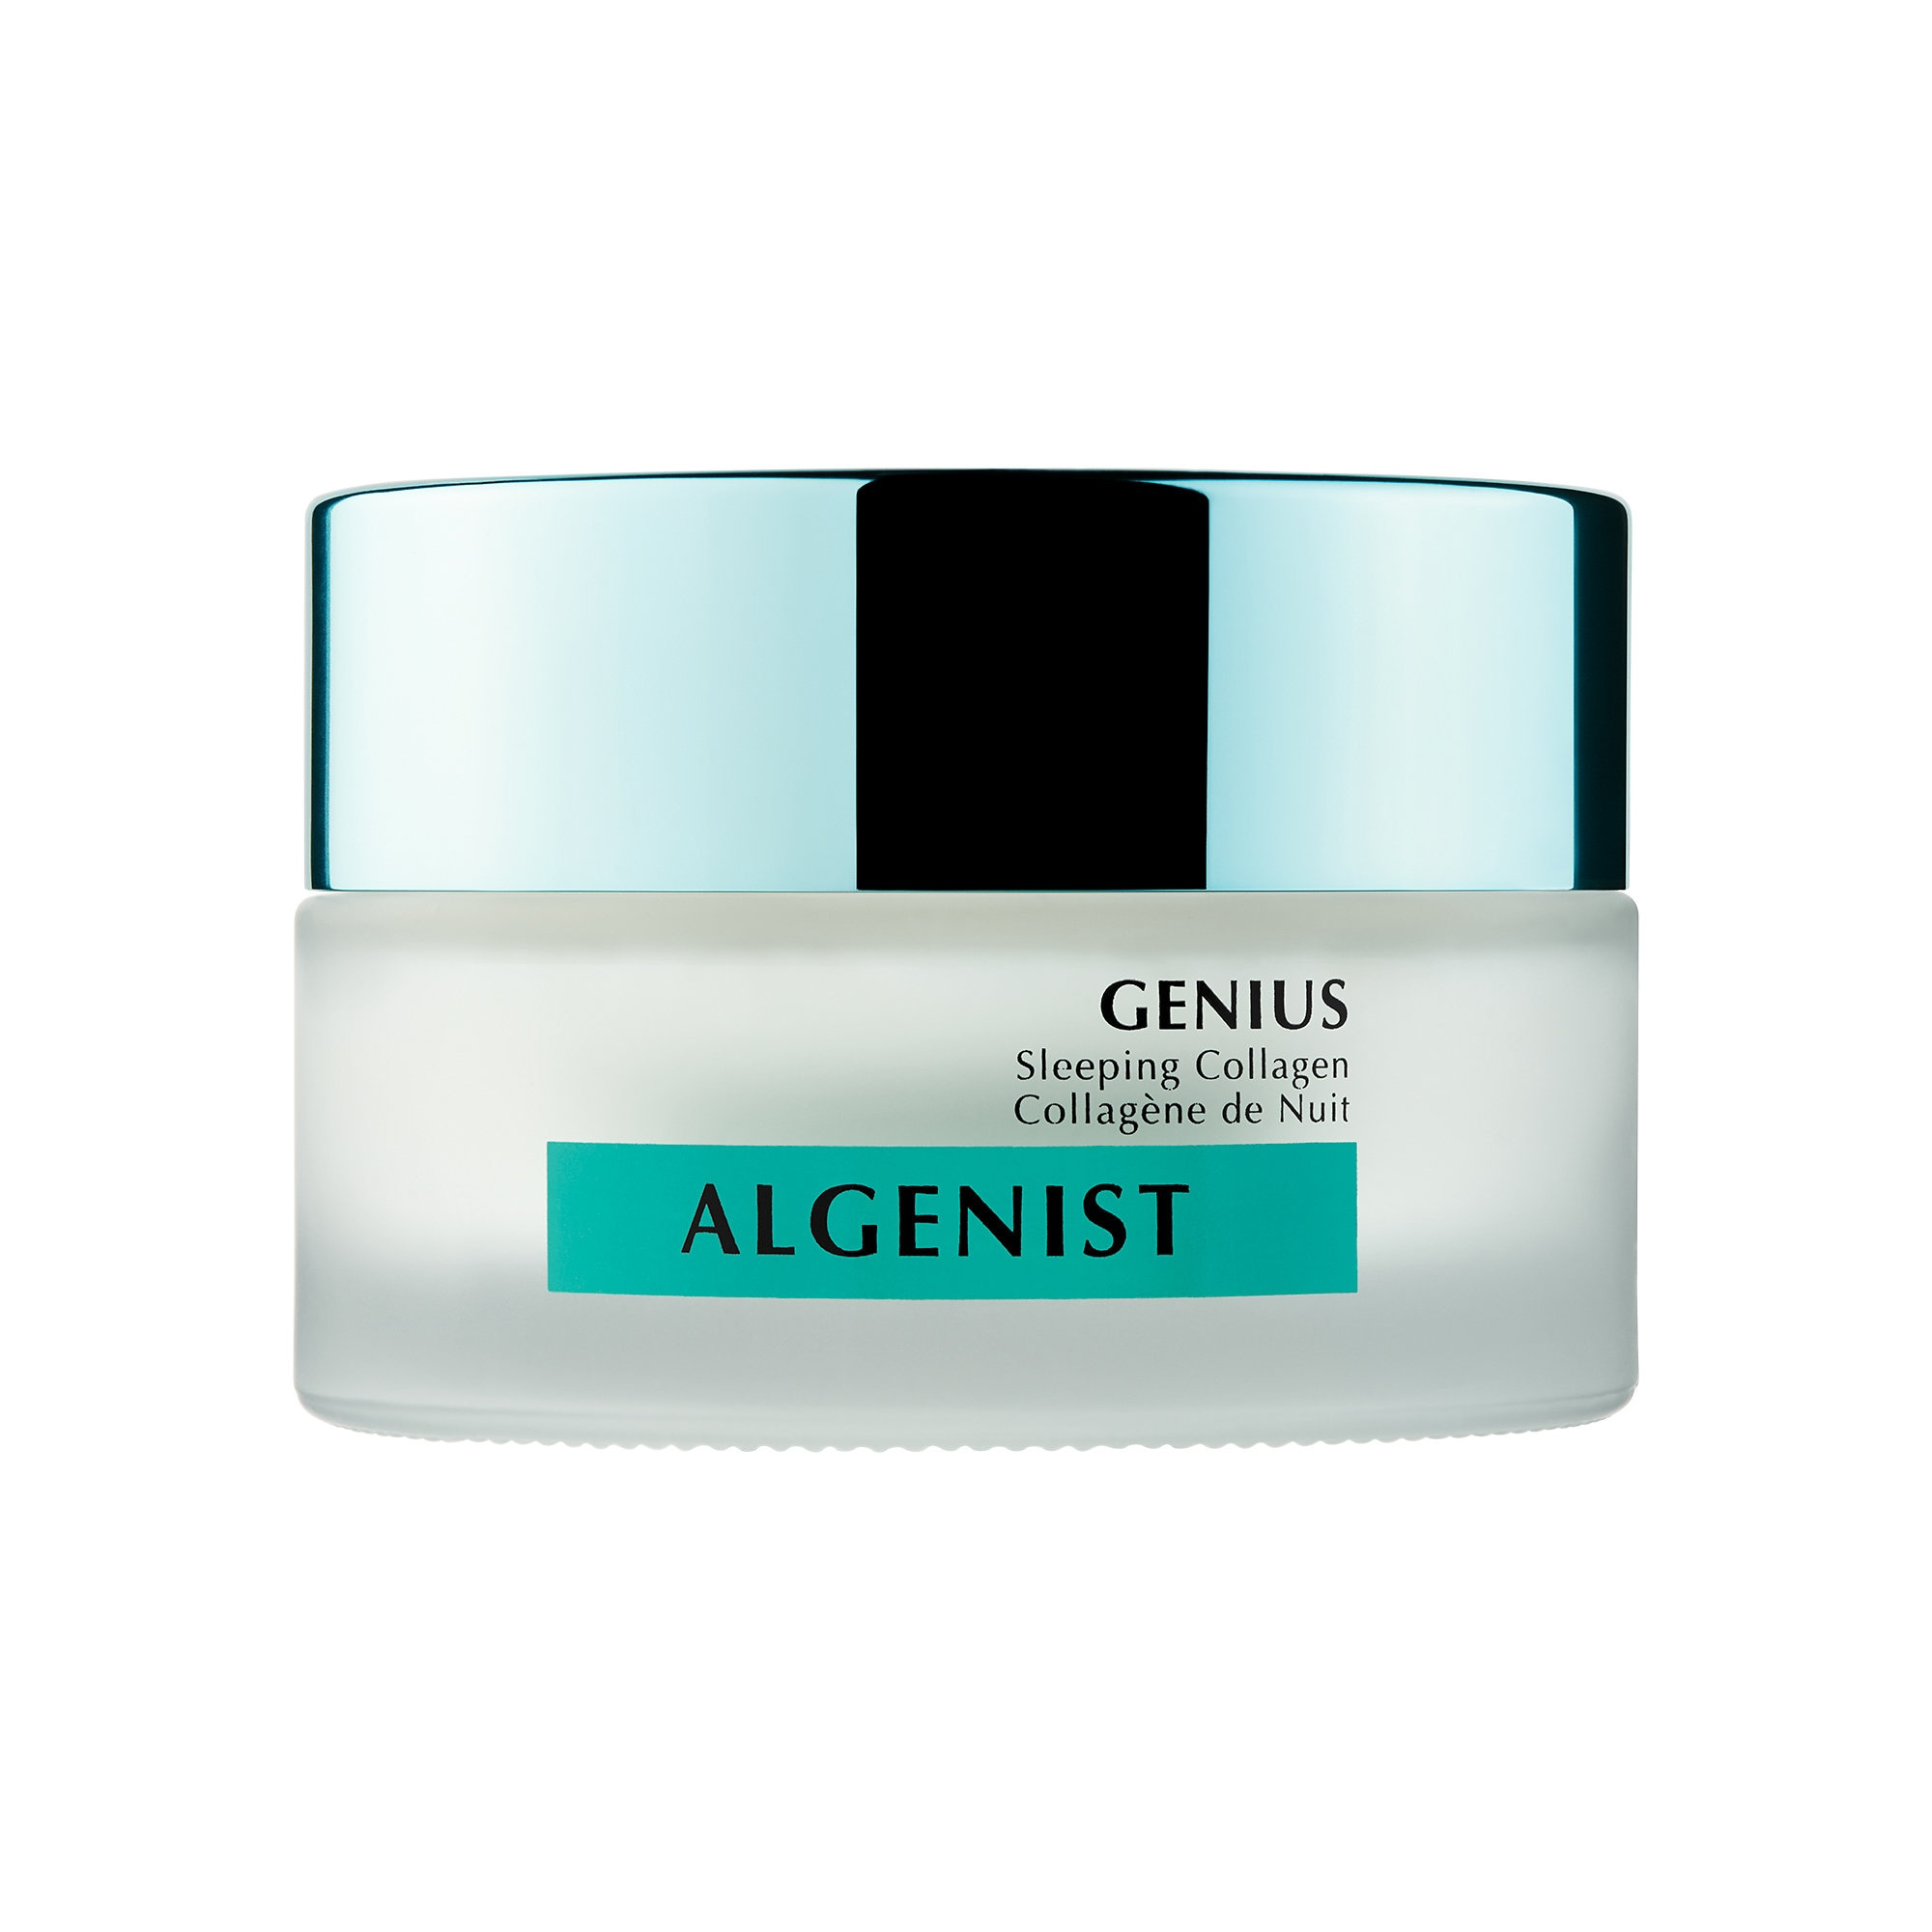 Algenist - Genius Sleeping Collagen